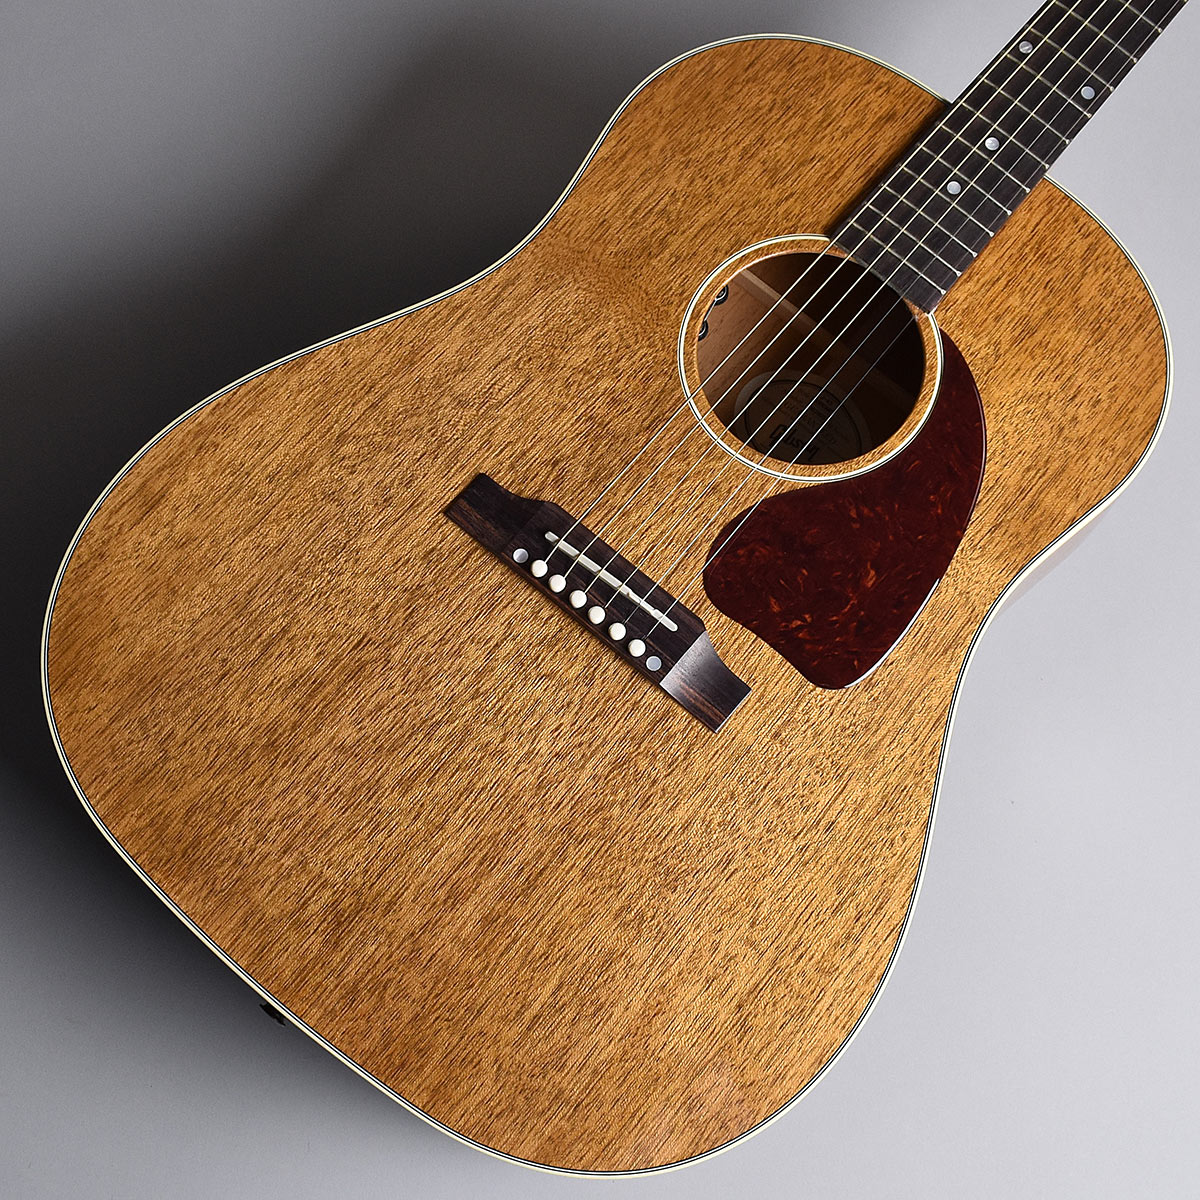 Gibson J-45 Mahogony Antique Natural 2018 Limited Model S/N:10028051 エレアコ  【ギブソン J45】【未展示品】